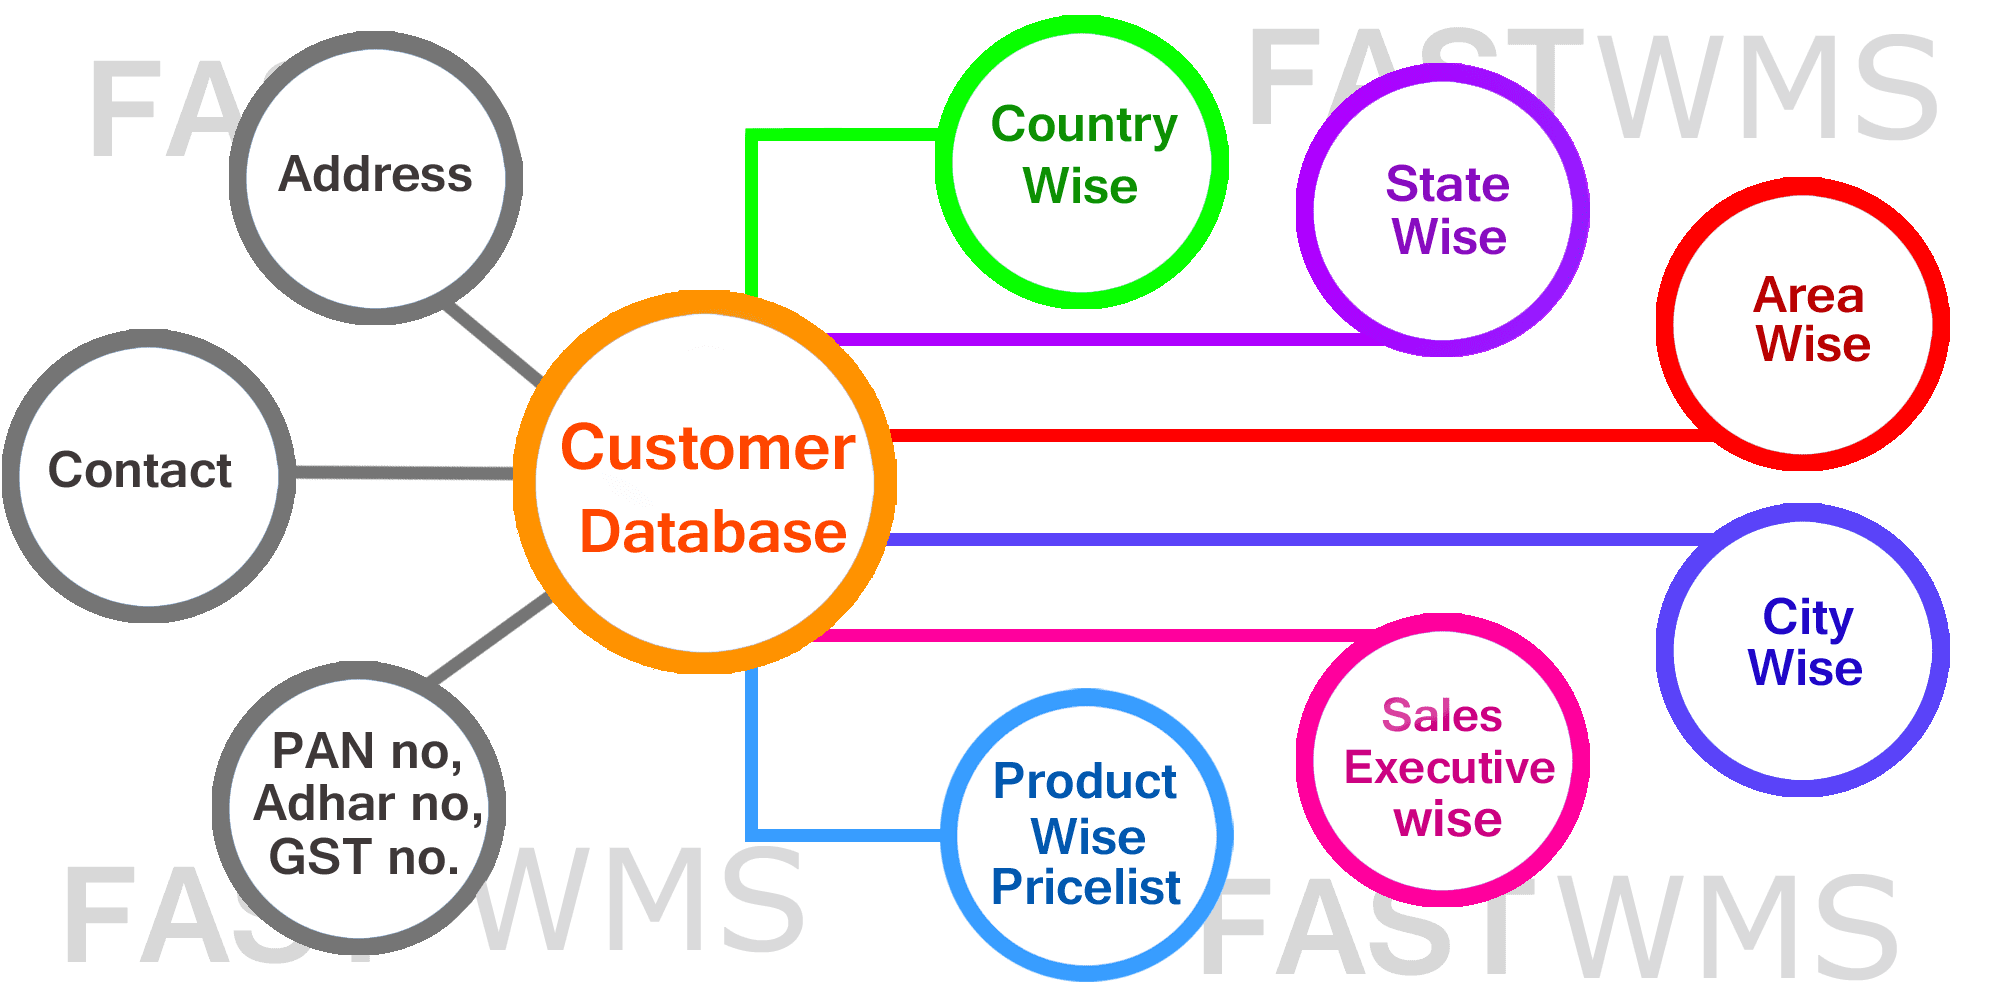 customer contacts database